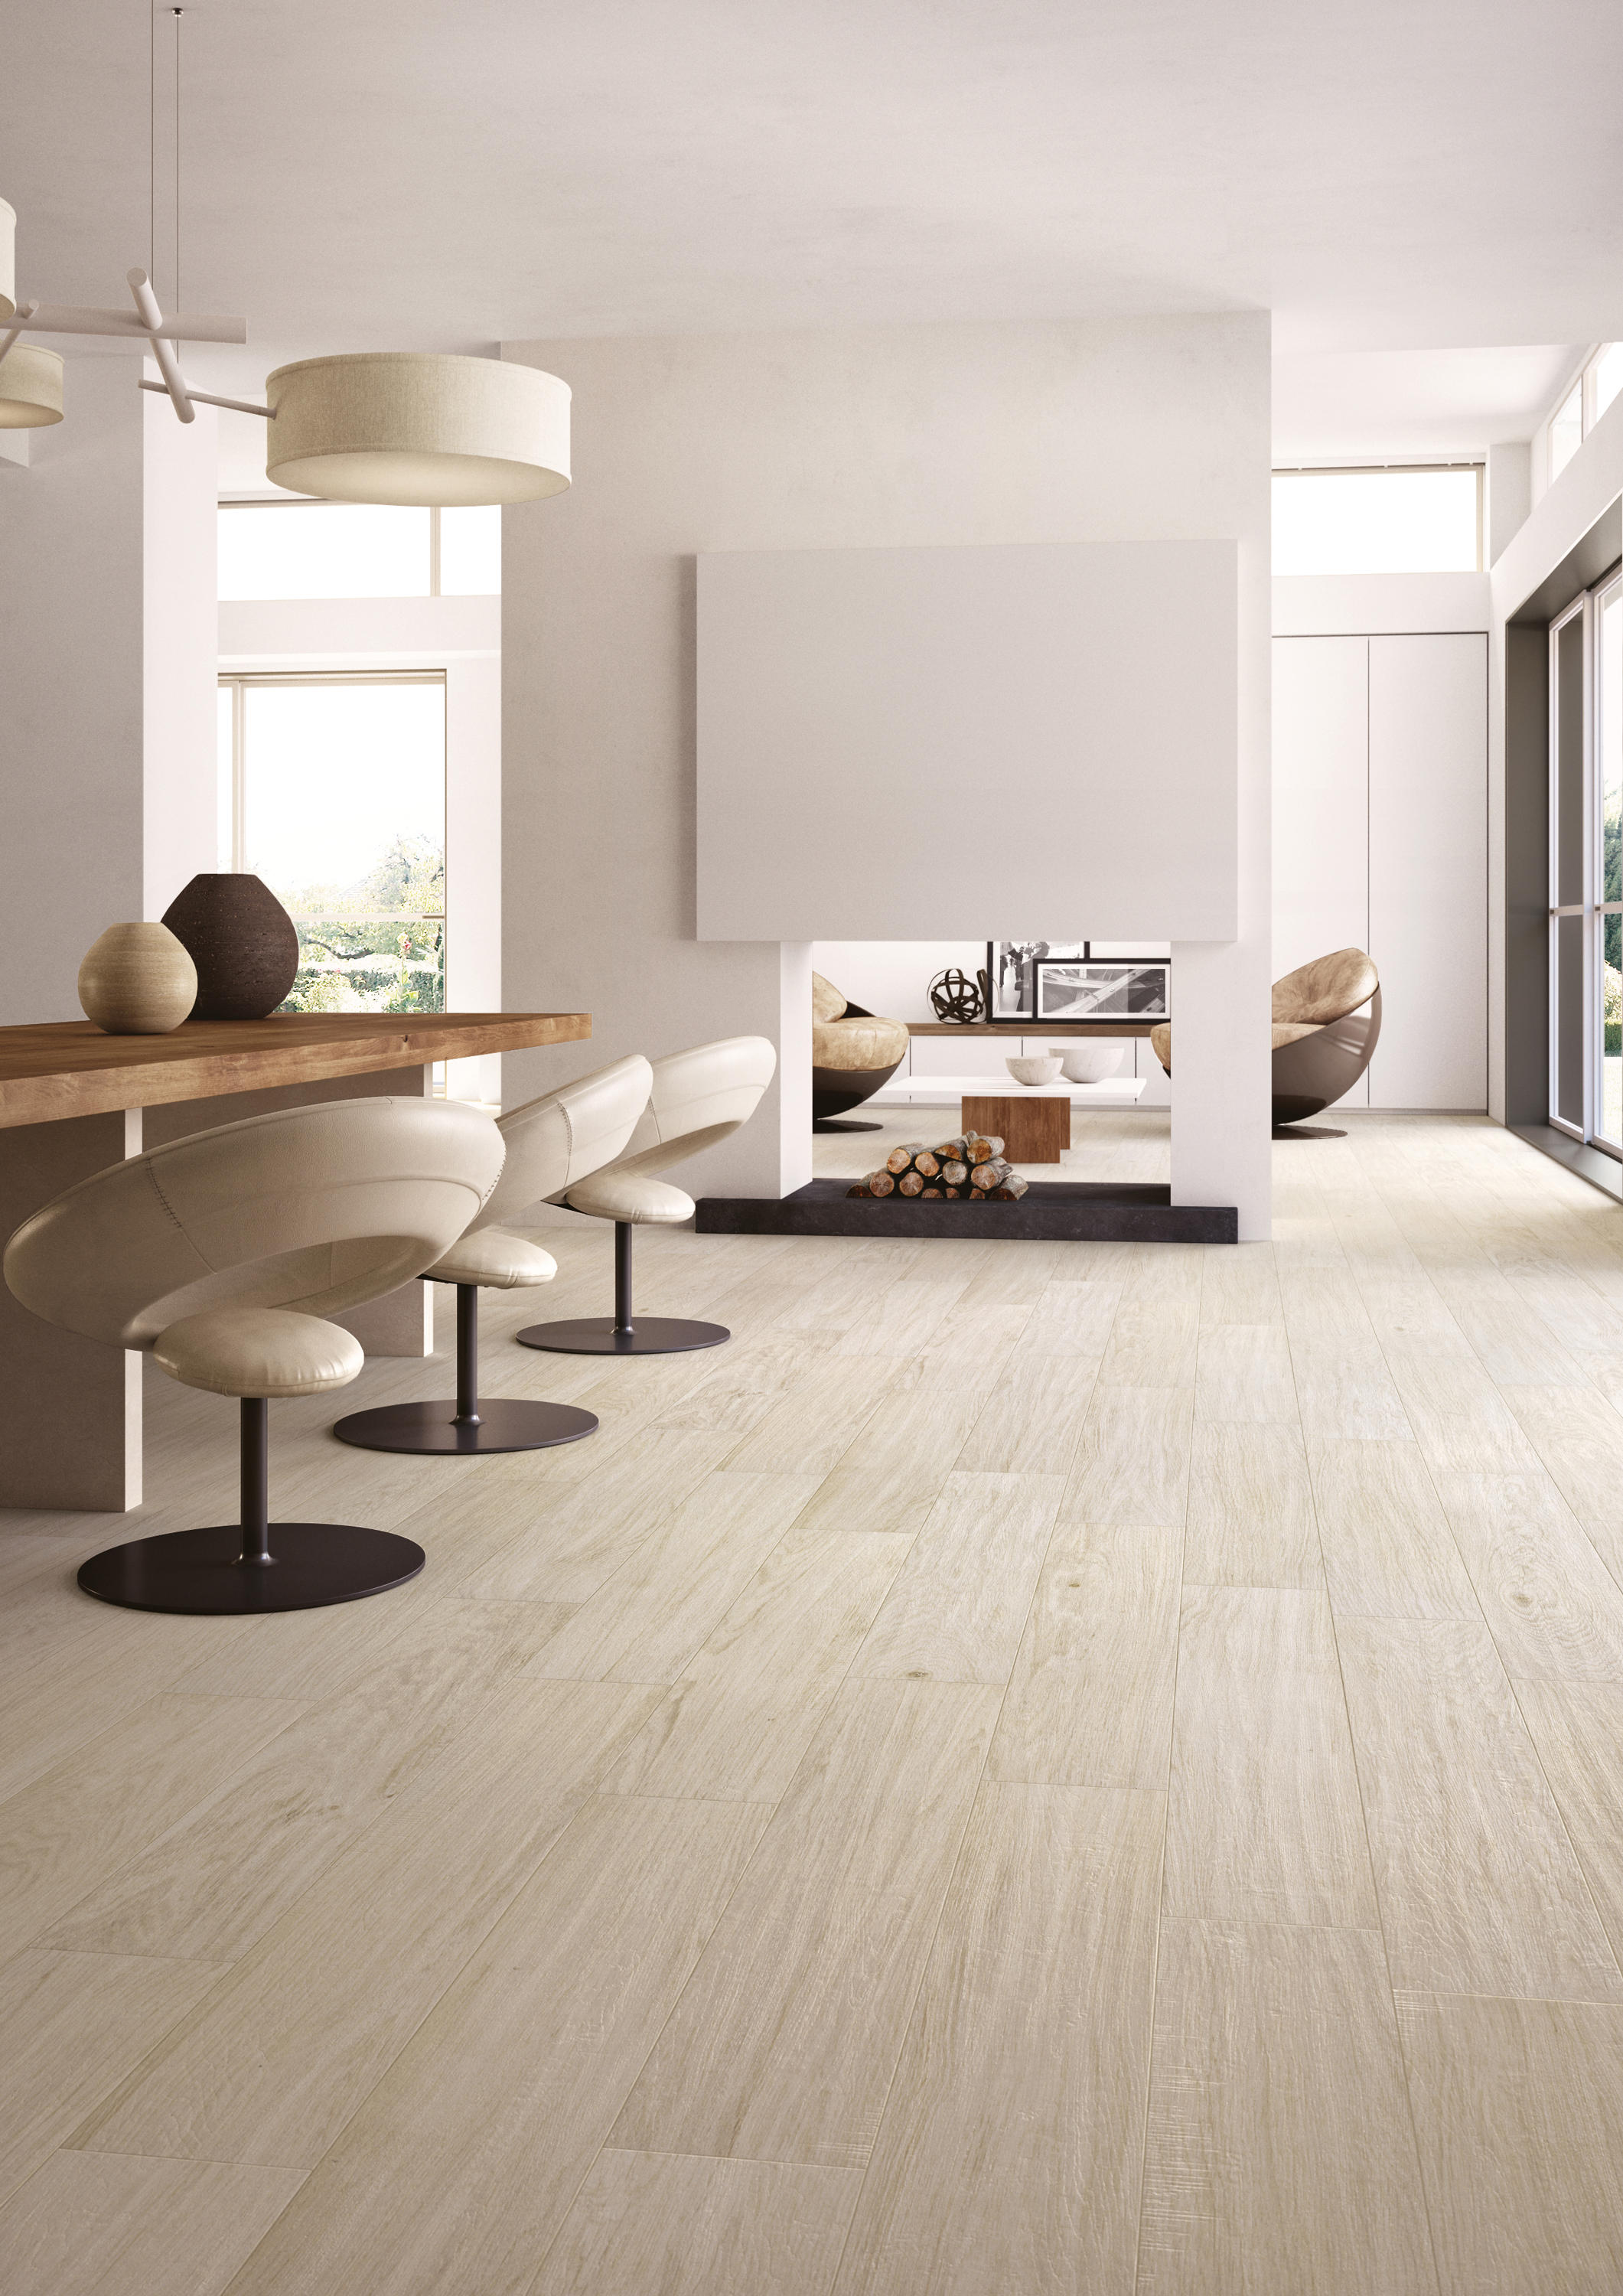 Silvis candeo floor tiles from cotto d 39 este architonic for Pose carrelage sol imitation parquet